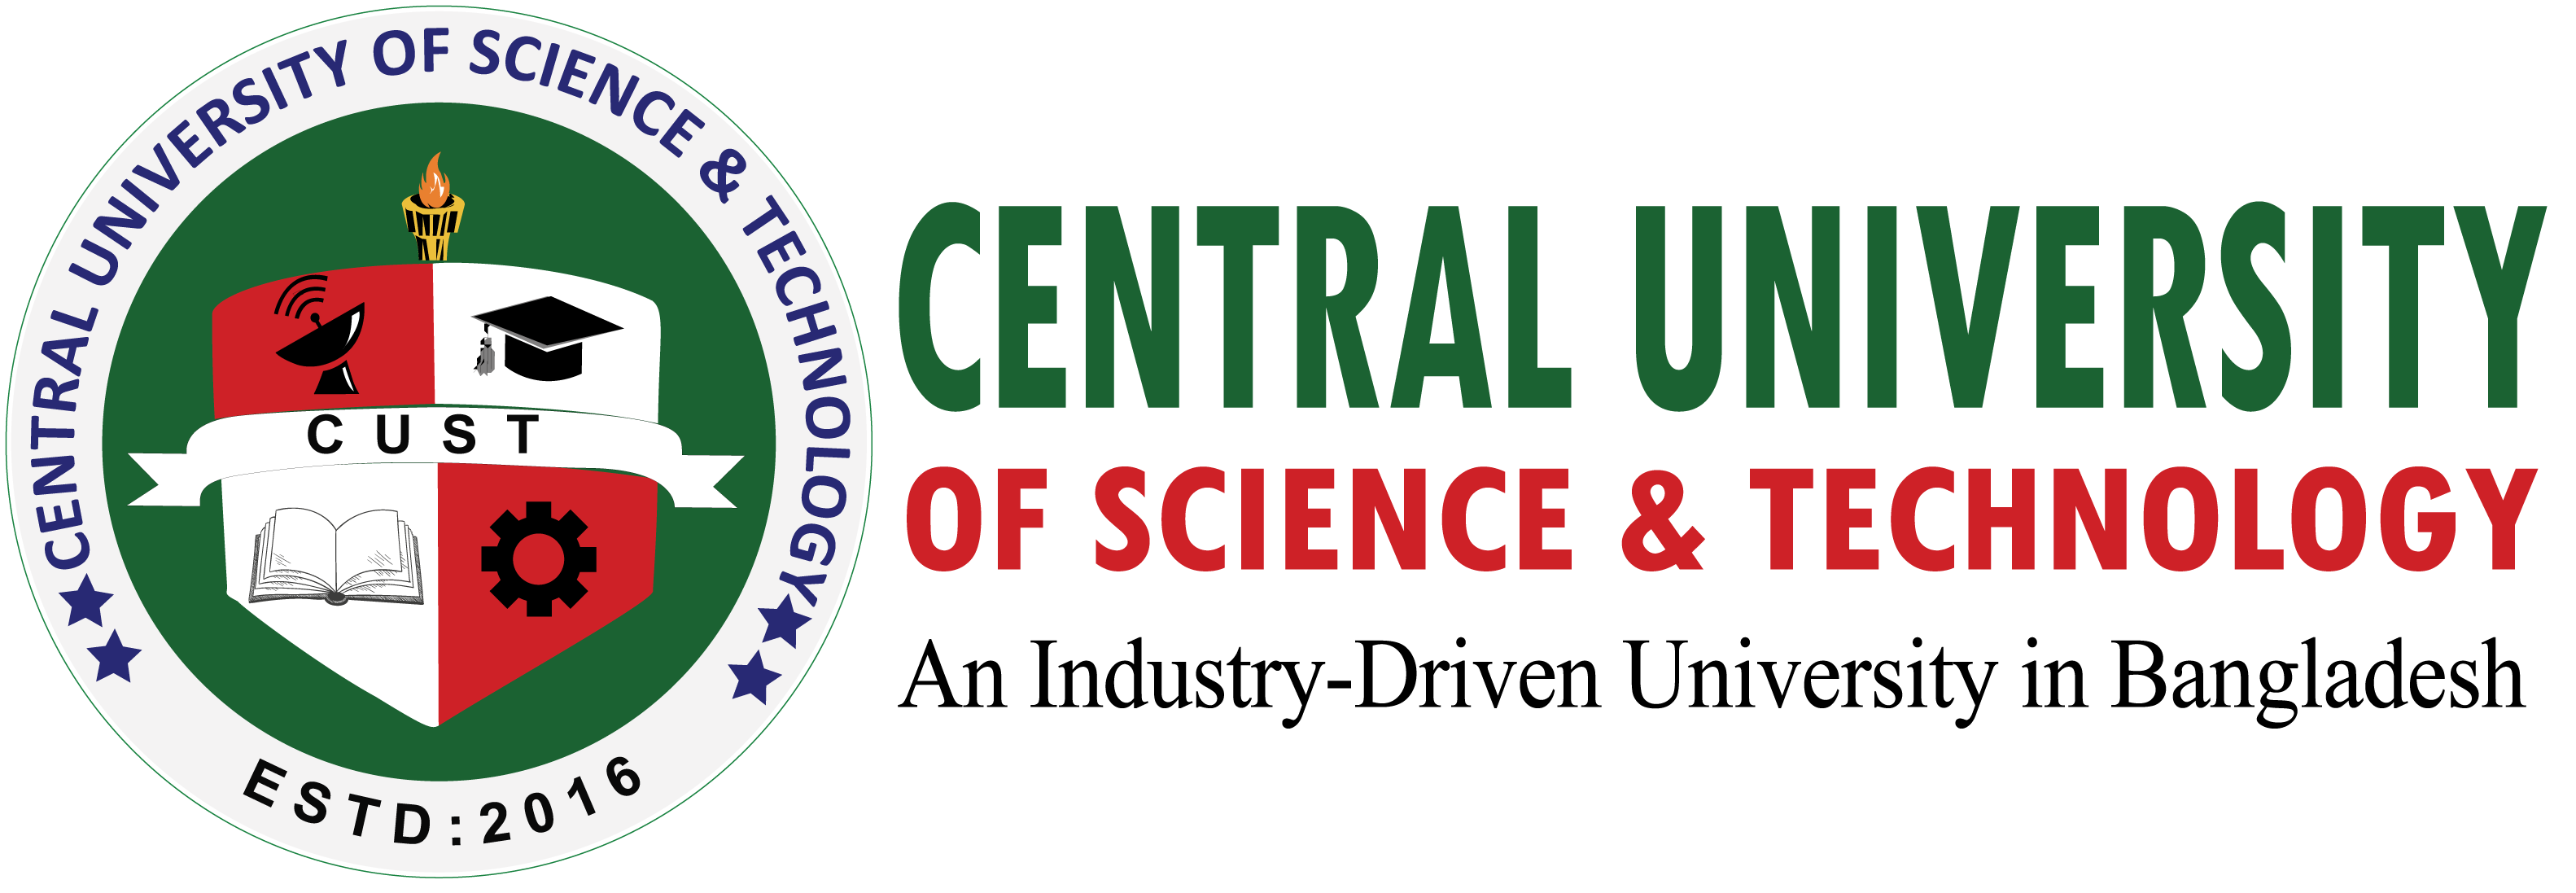 Undergraduate Admission - Central University of Science & Technology